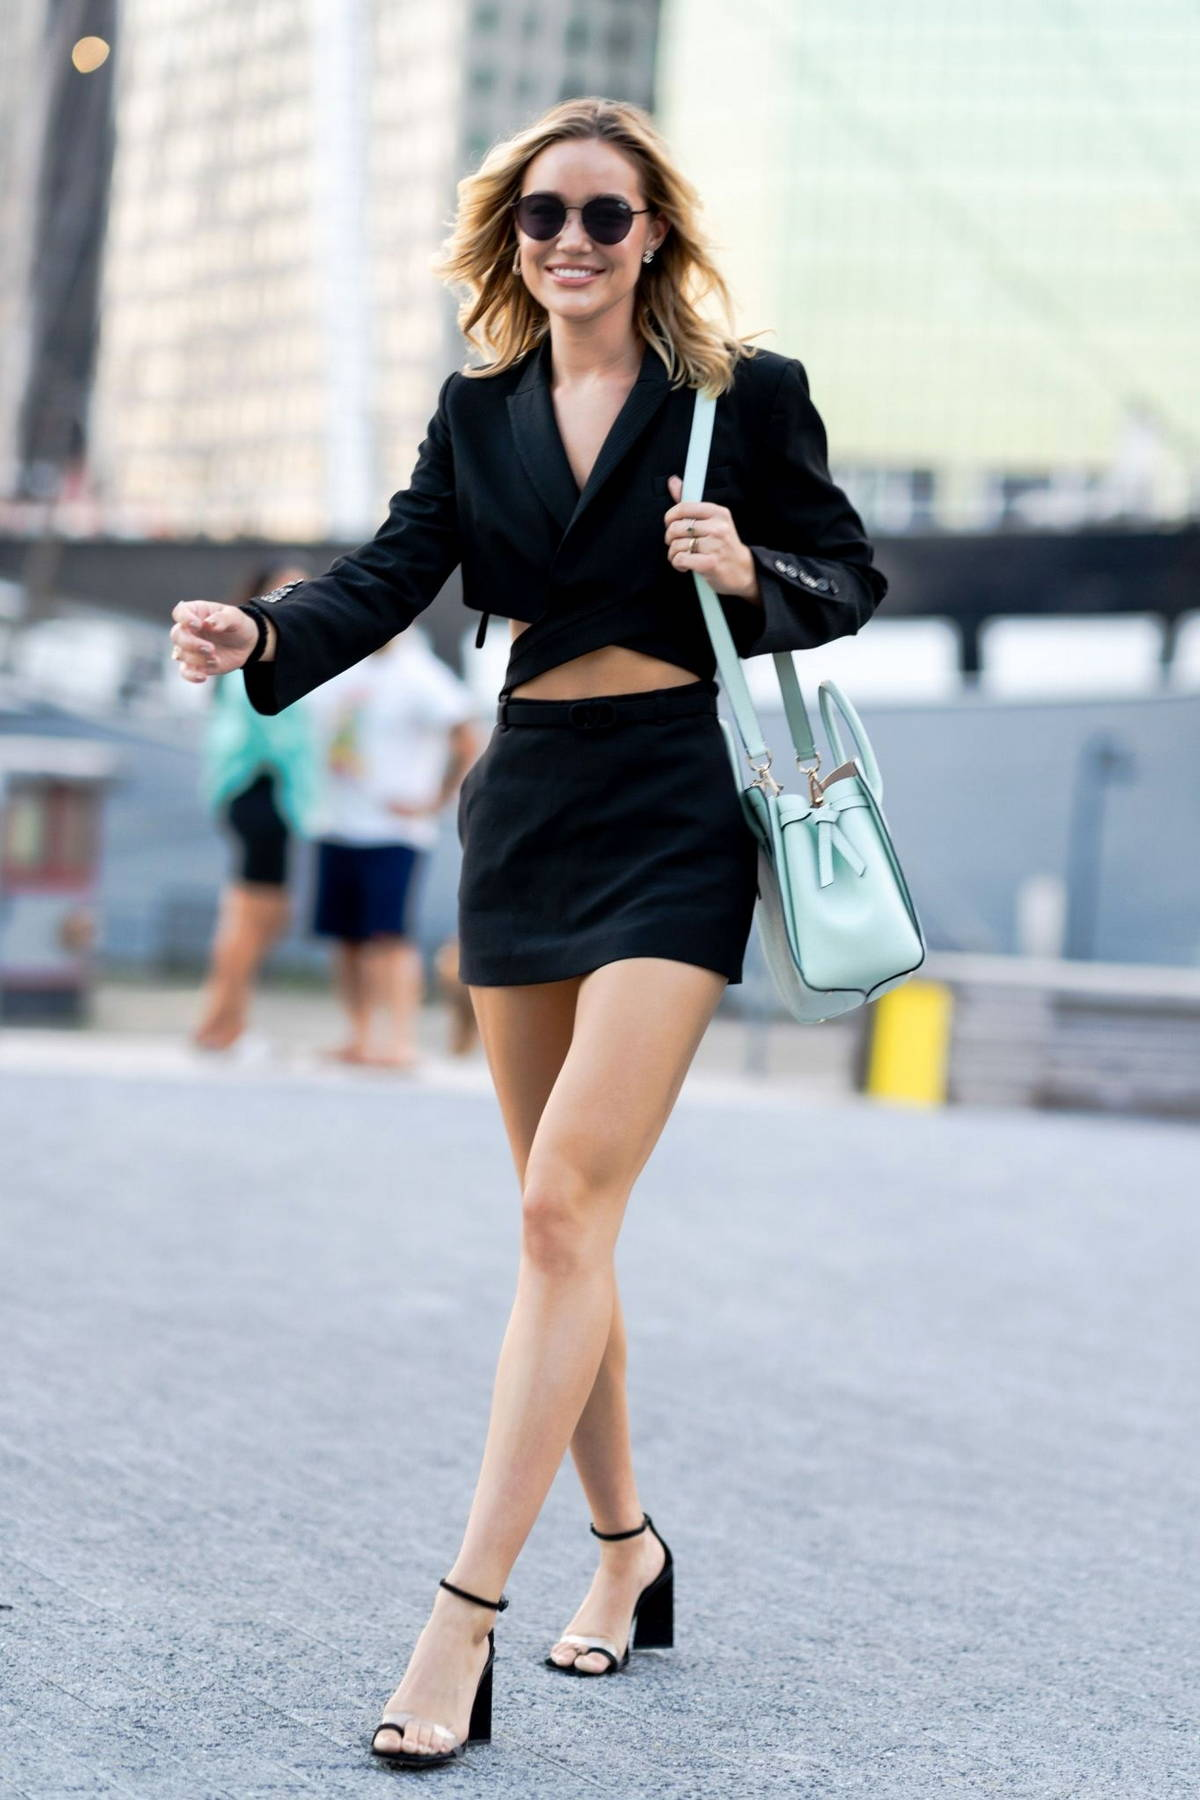 Olivia Ponton looks stylish in all-black while stepping out in the South Street Seaport, New York City